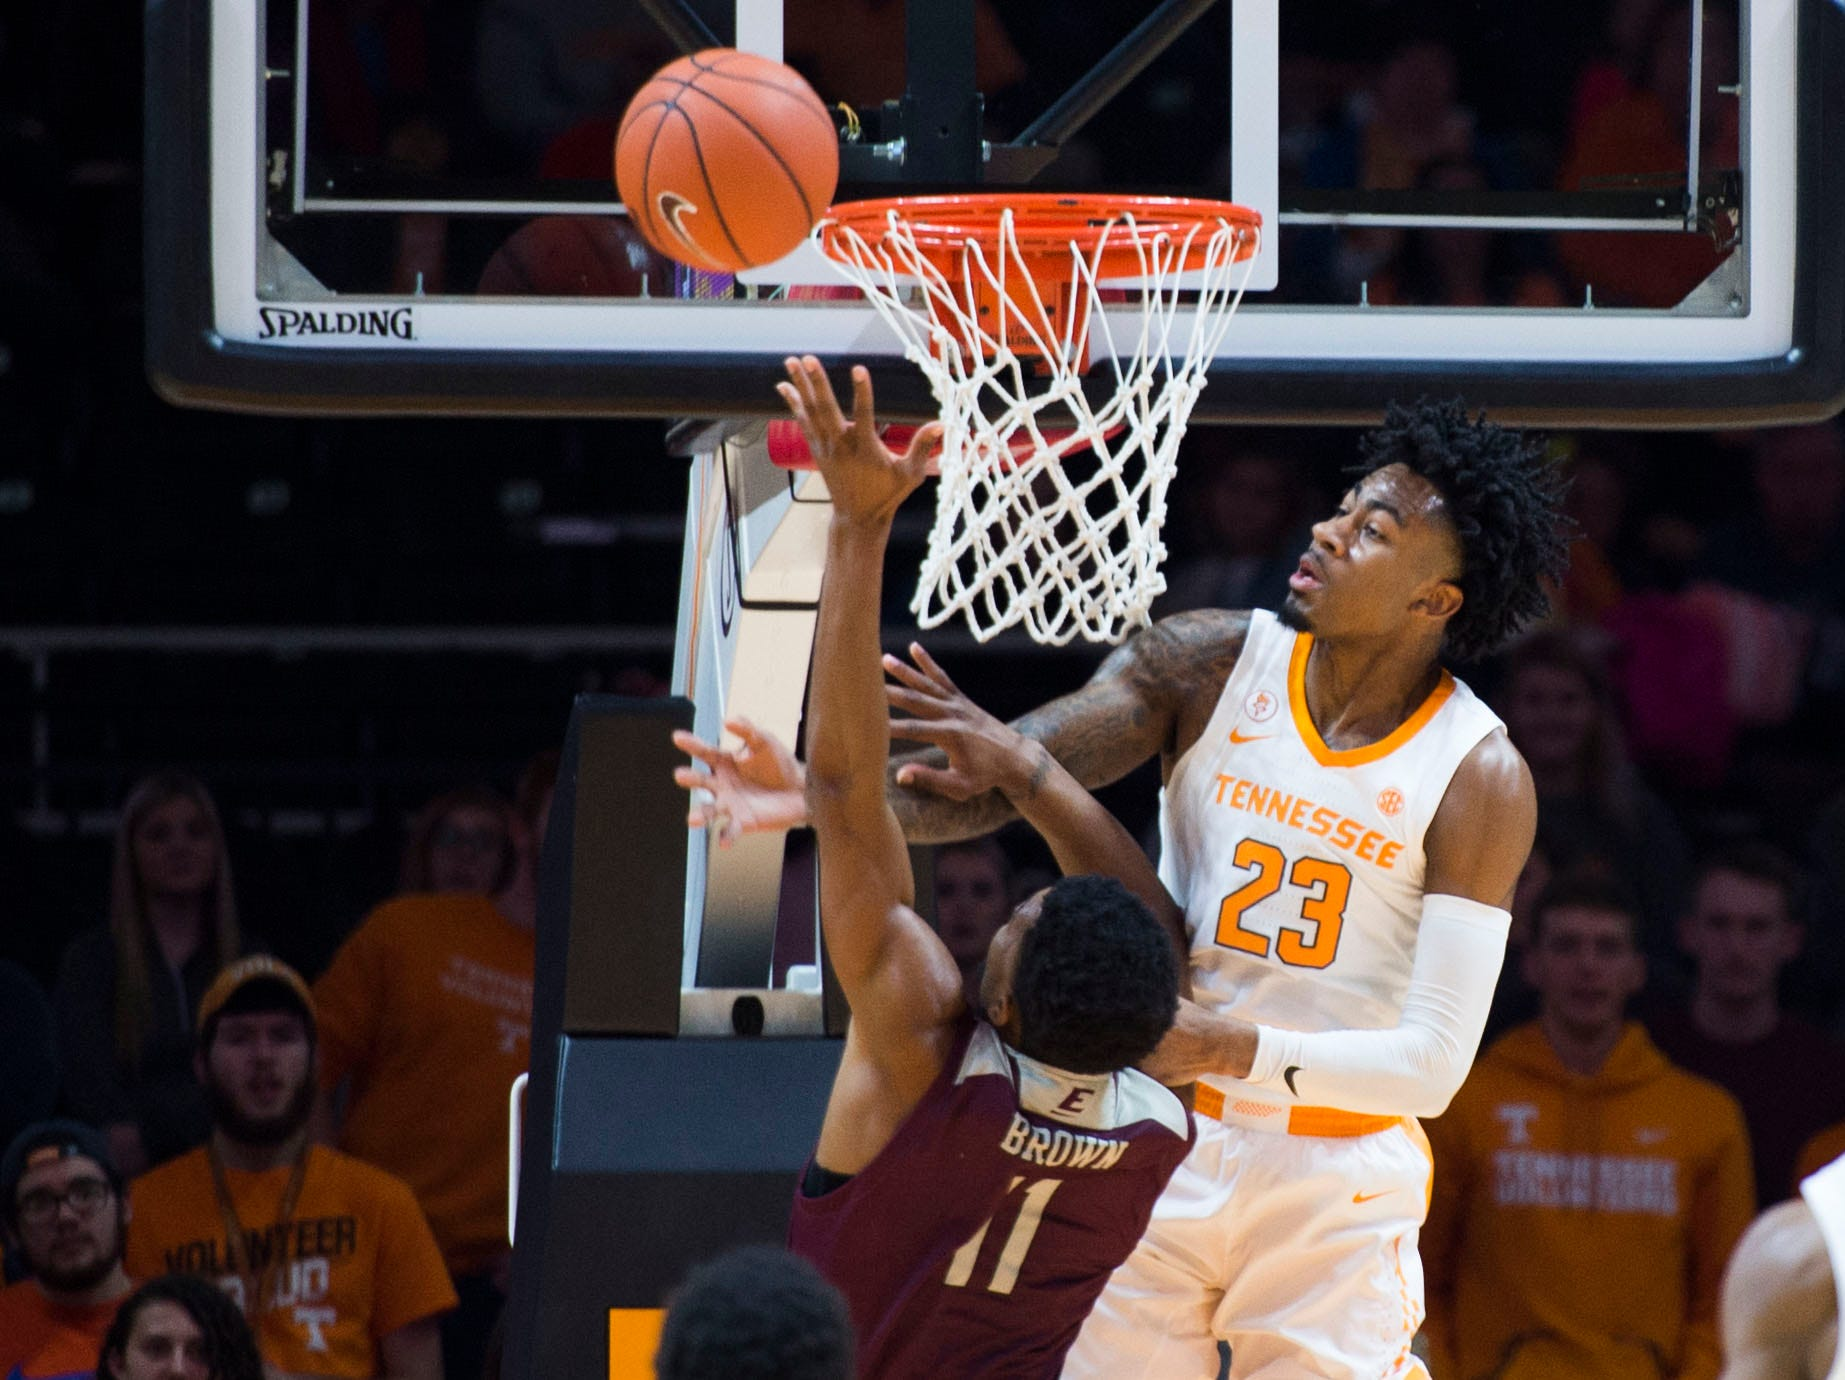 Tennessee's Jordan Bowden (23) defends a shot by EKU's Jomaru Brown (11) during the first half of a NCAA men's basketball game between Tennessee and Eastern Kentucky University at Thompson-Boling Arena Wednesday, Nov. 28, 2018.